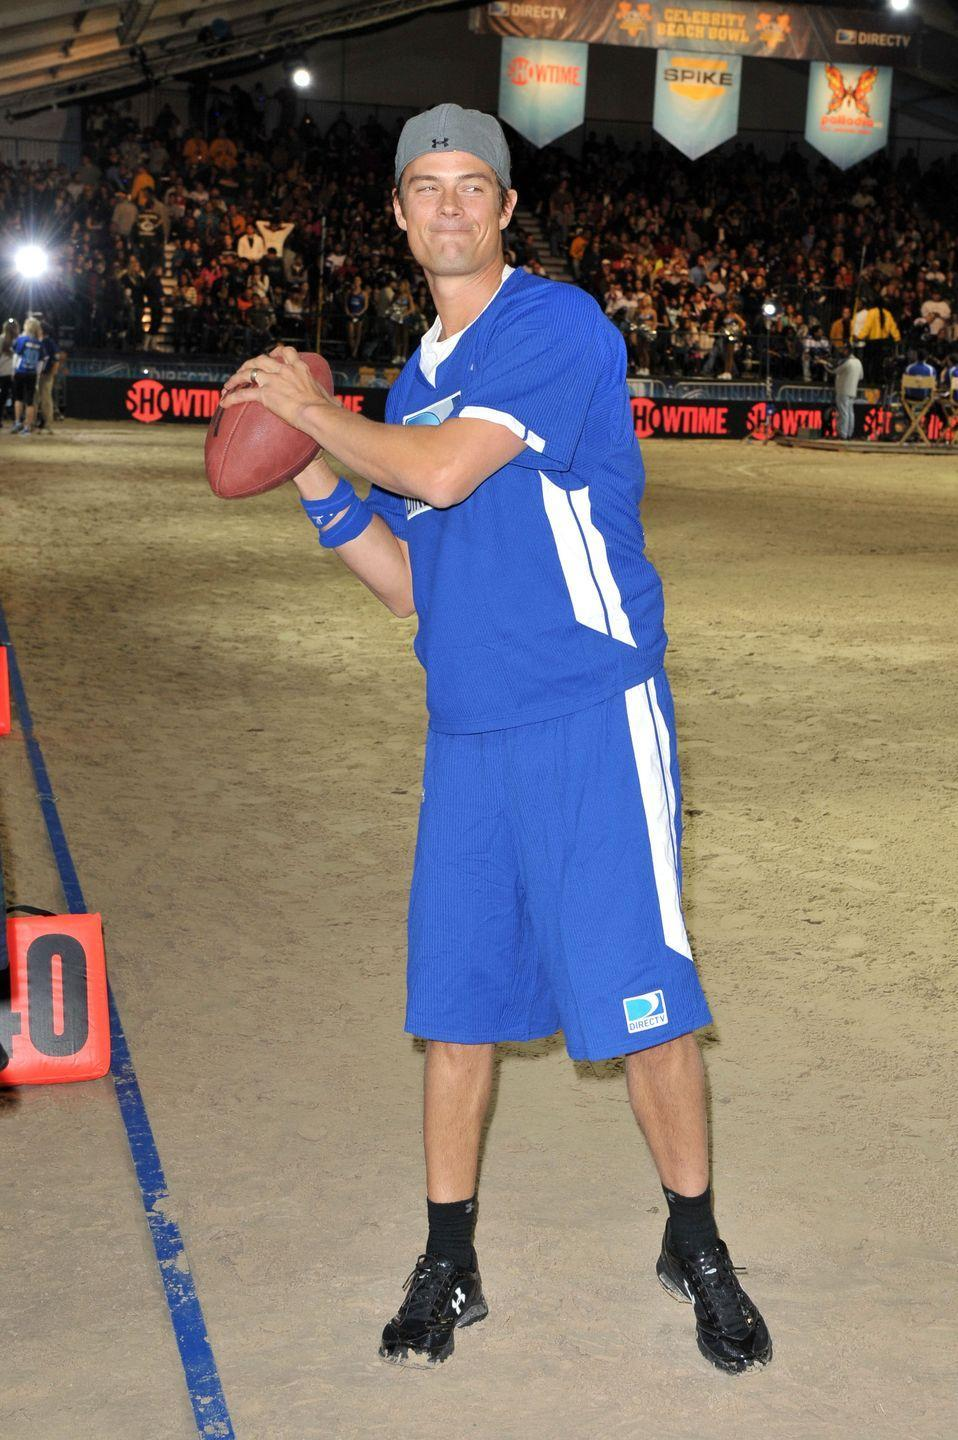 """<p>While competing in a charity football game, Josh Duhamel showed off his pigskin skills. These are the same skills that earned him the <a href=""""https://herosports.com/actor-josh-duhamel-football-quarterback-minot-state/"""" rel=""""nofollow noopener"""" target=""""_blank"""" data-ylk=""""slk:quarterback position"""" class=""""link rapid-noclick-resp"""">quarterback position</a> at Minot State University in North Dakota. </p>"""